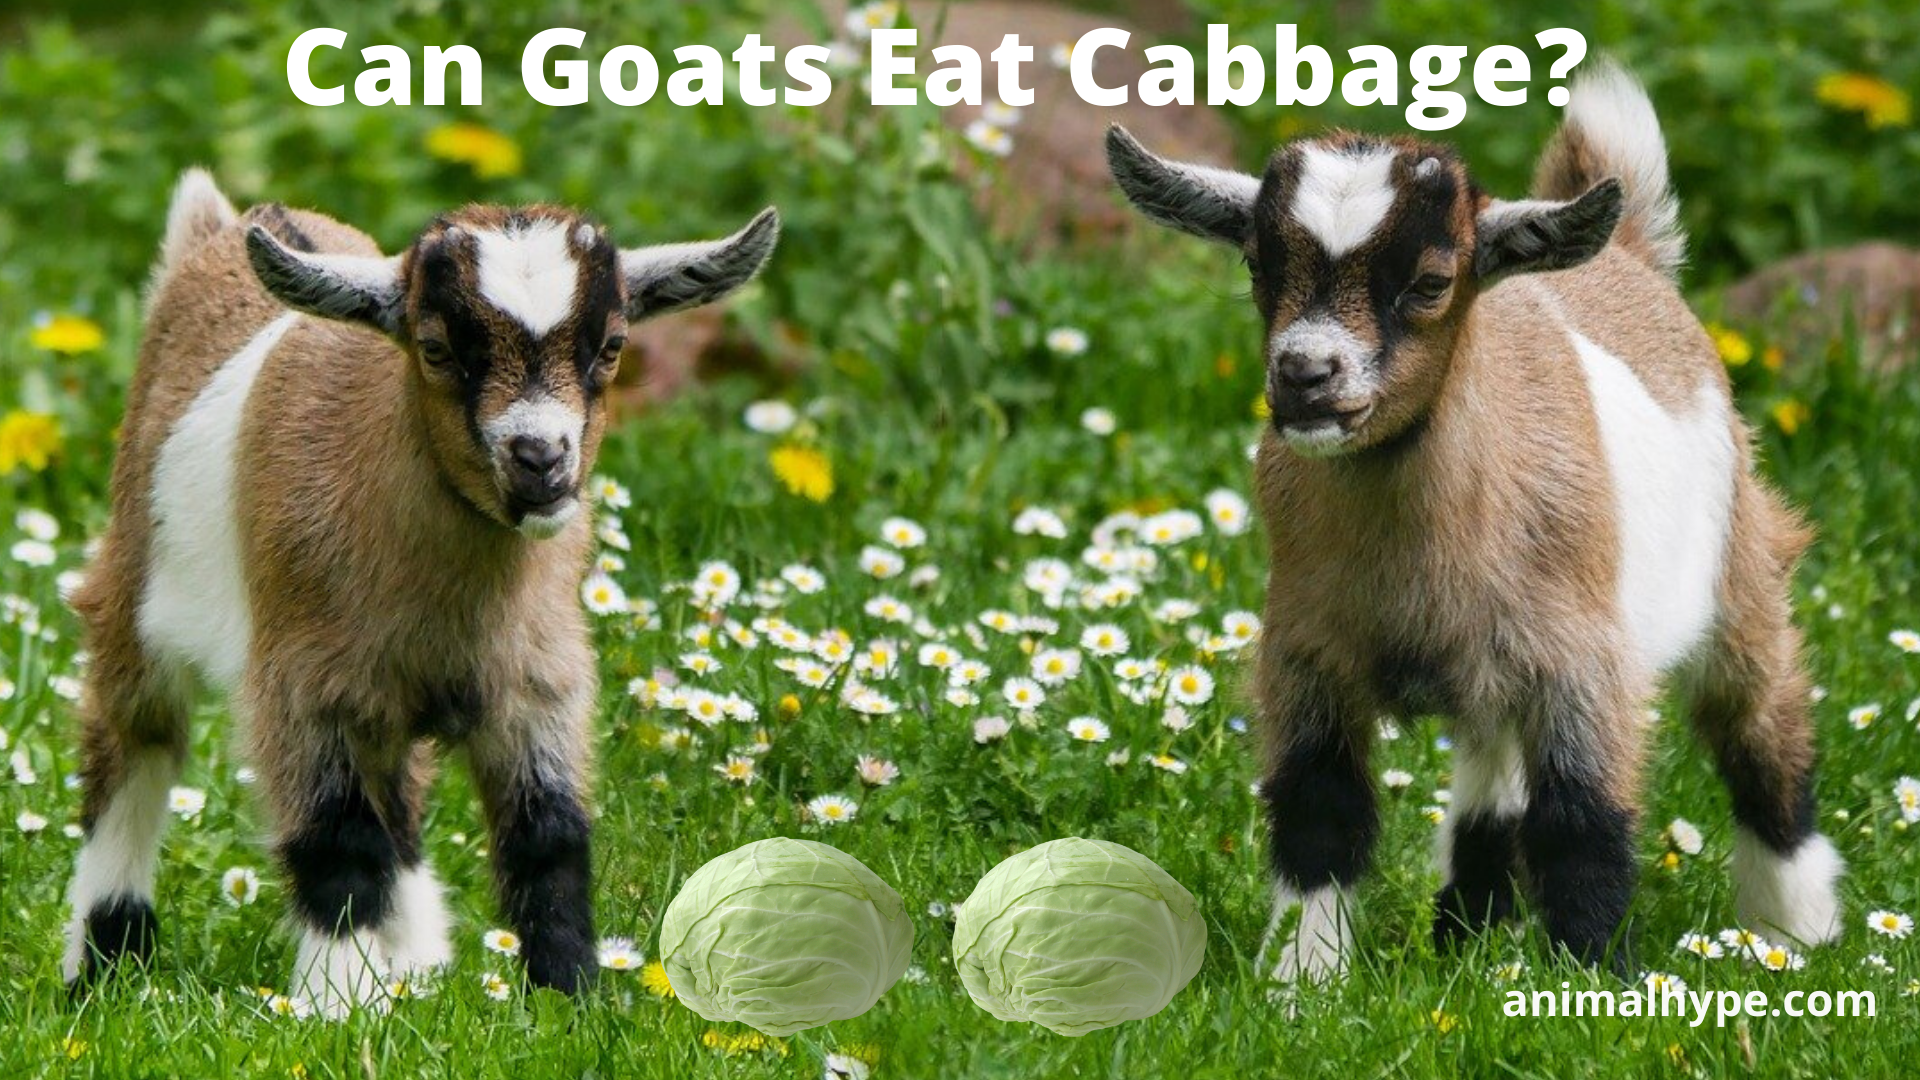 Can Goats Eat Cabbage